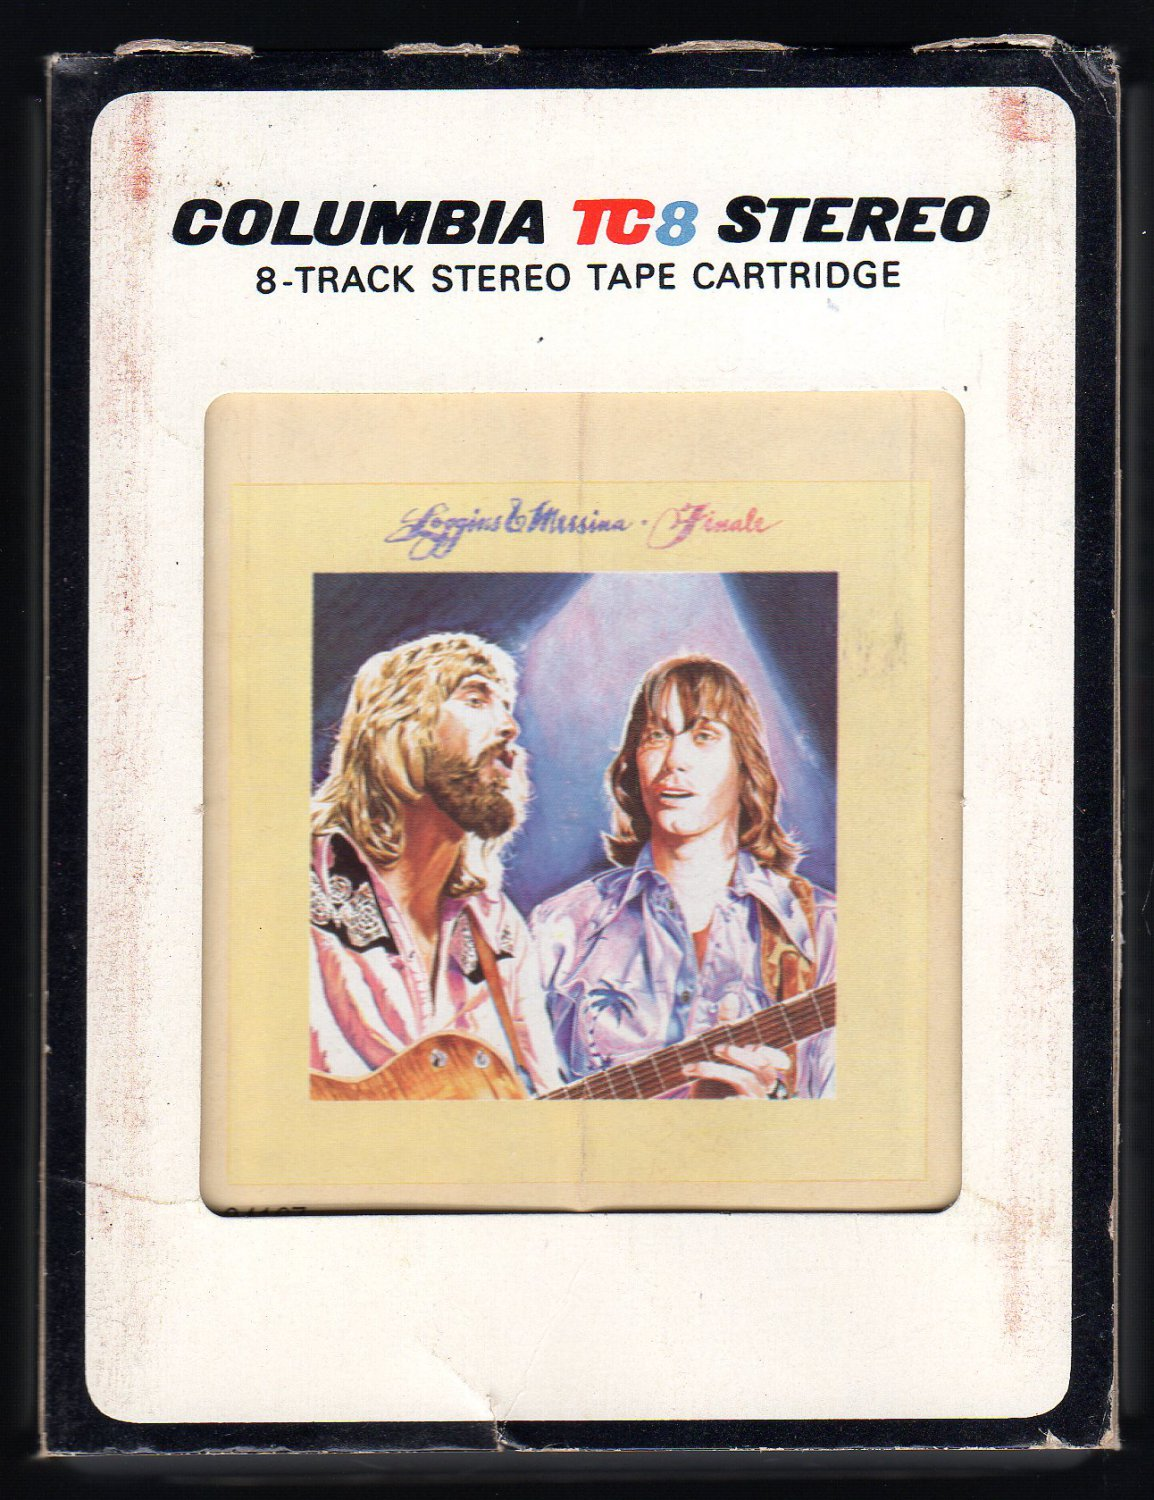 Kenny Loggins And Jim Messina - Finale 1977 CBS A41 8-TRACK TAPE